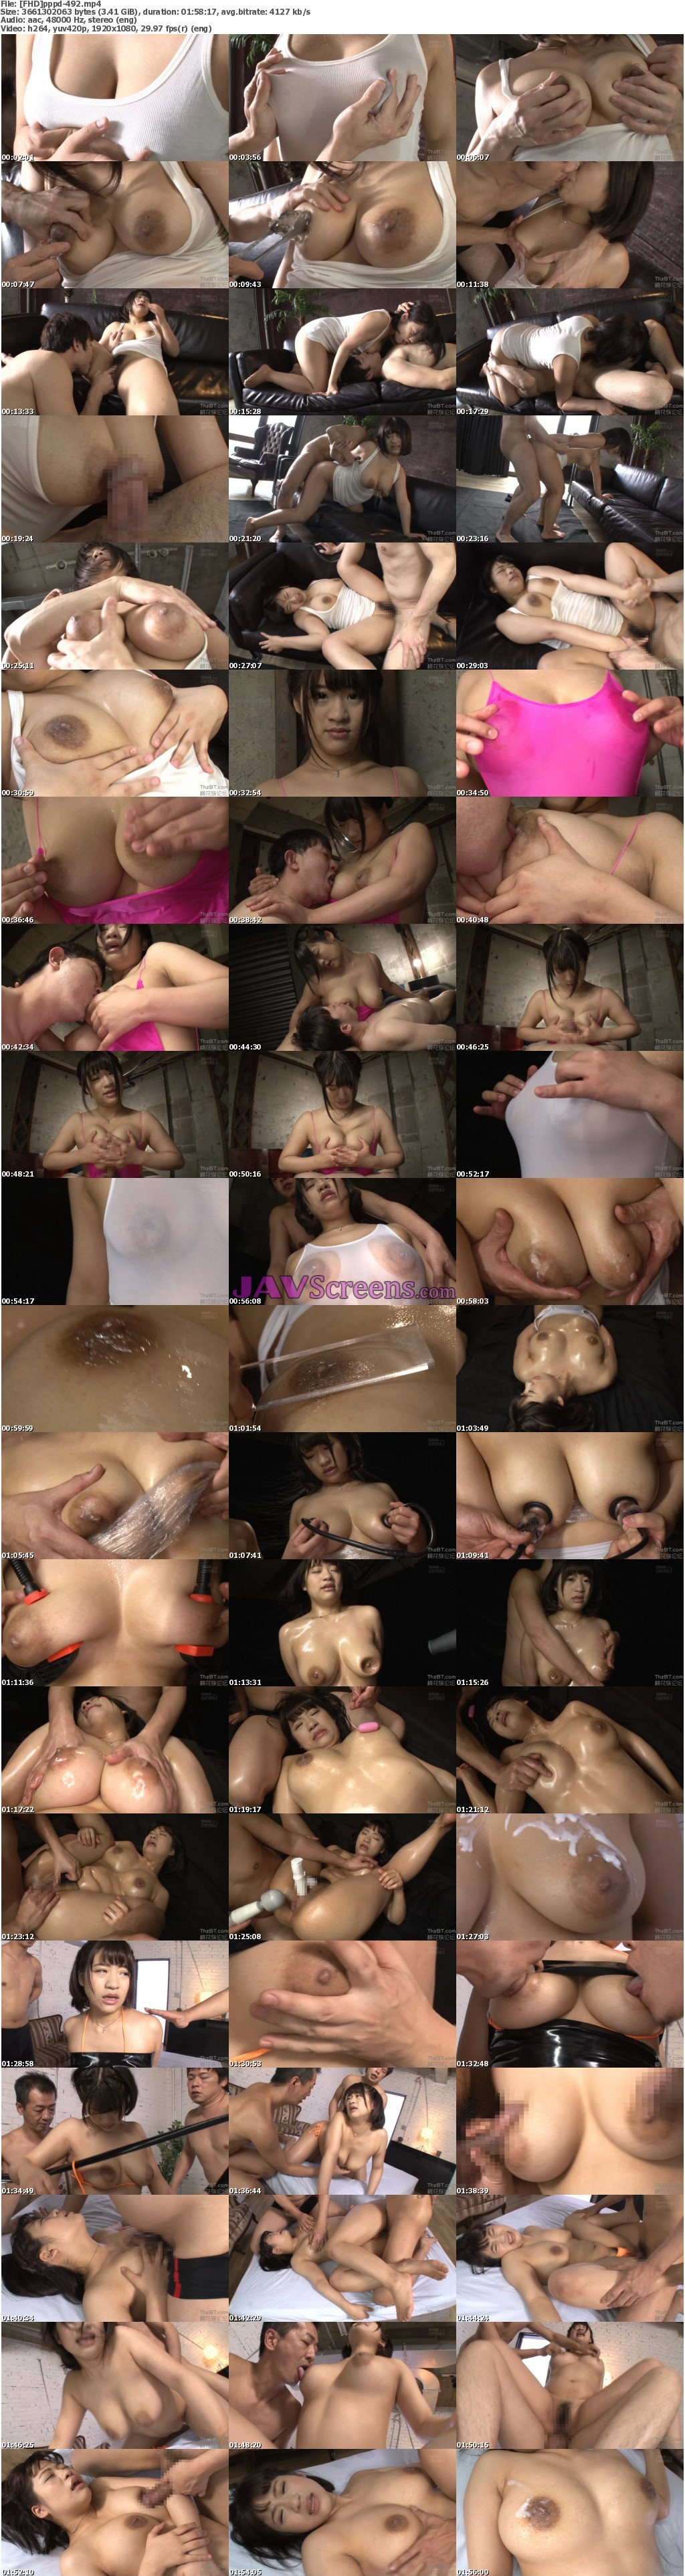 PPPD-492.jpg - JAV Screenshot